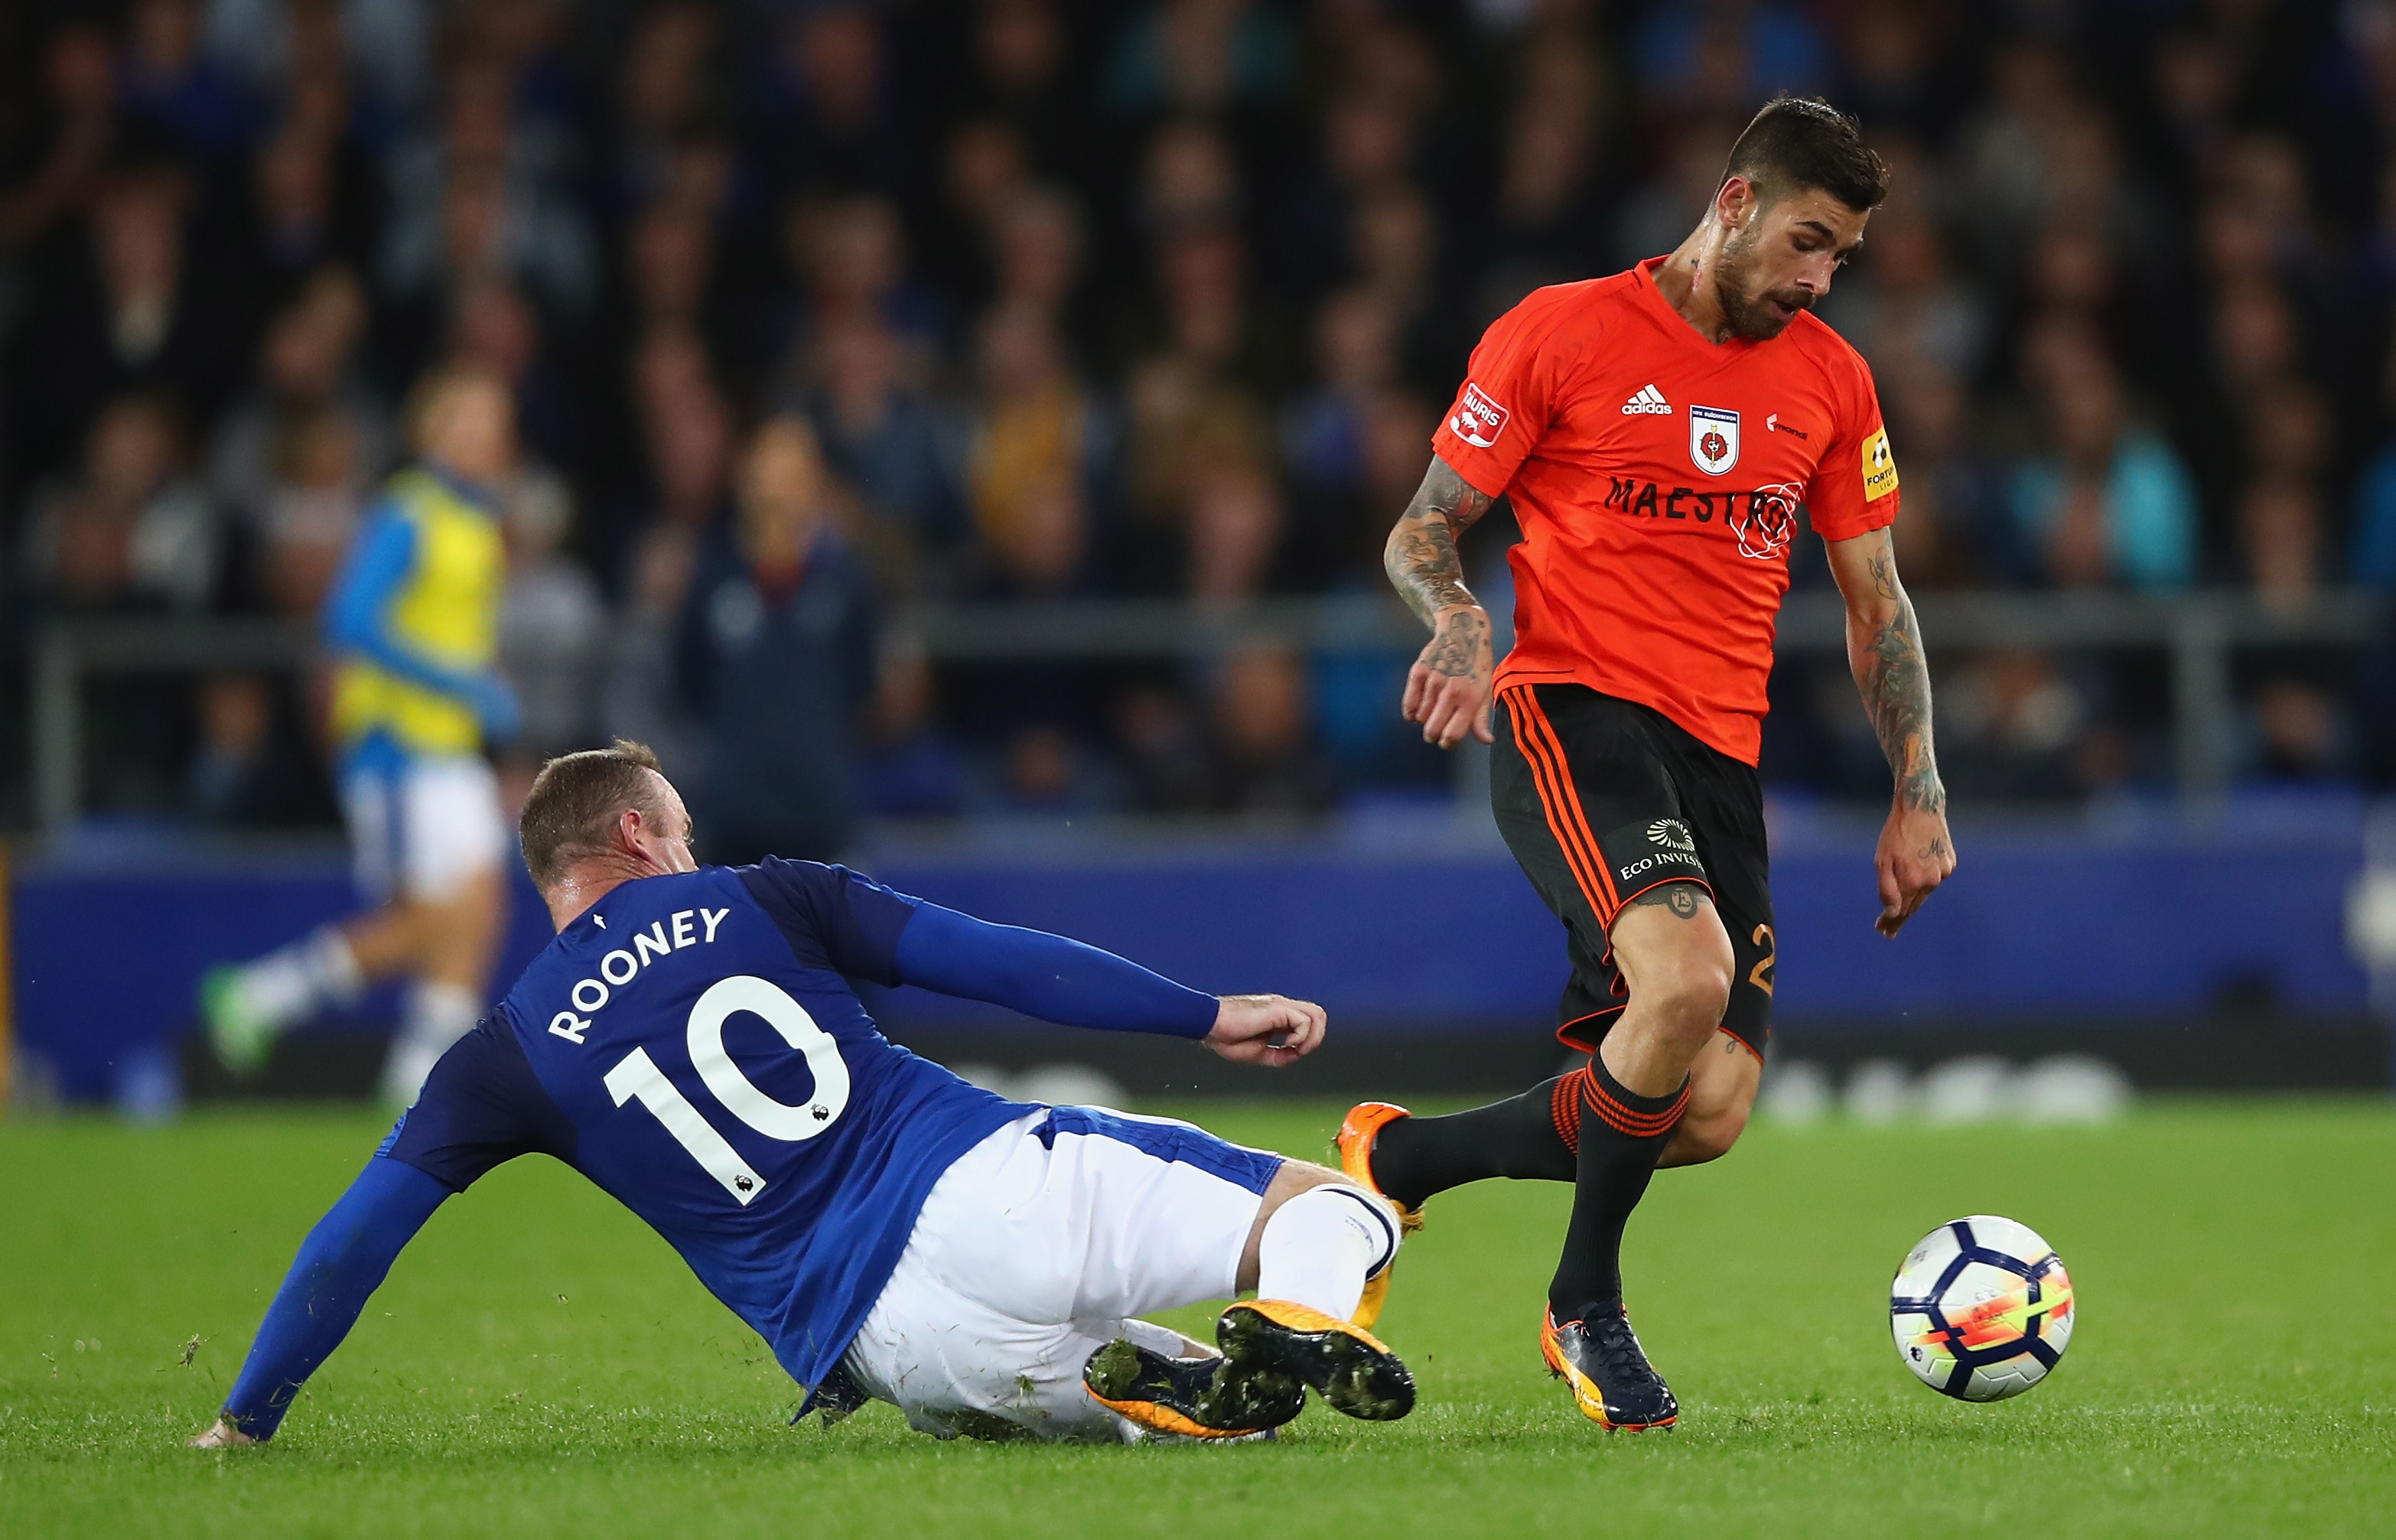 Europa League play-off round updates from Goodison Park